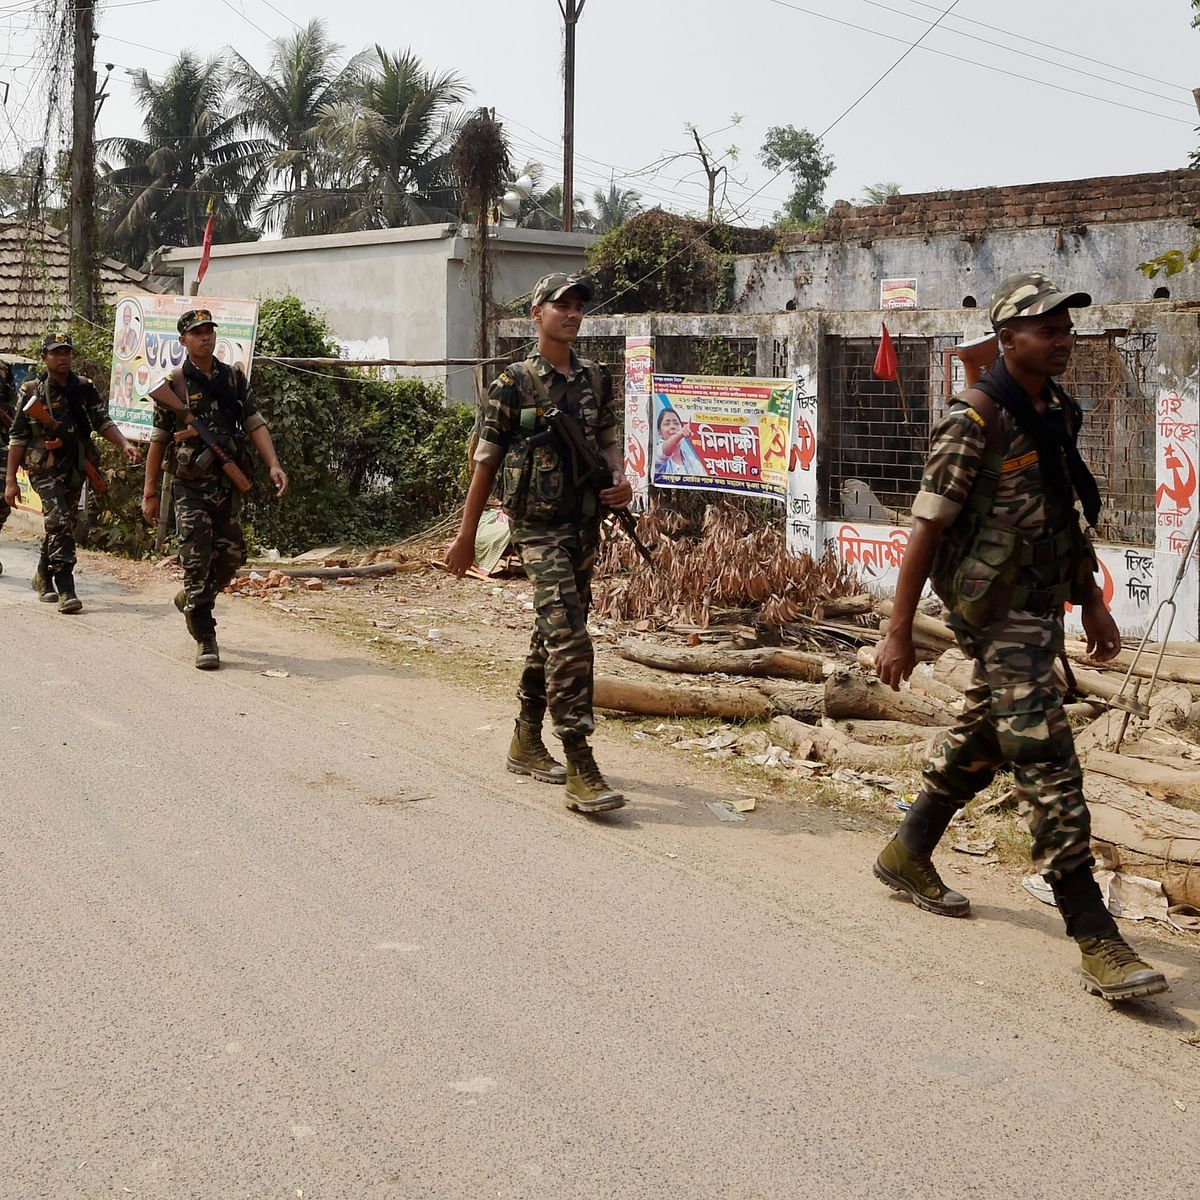 West Bengal polls: 56 bombs recovered in Narendrapur, says EC